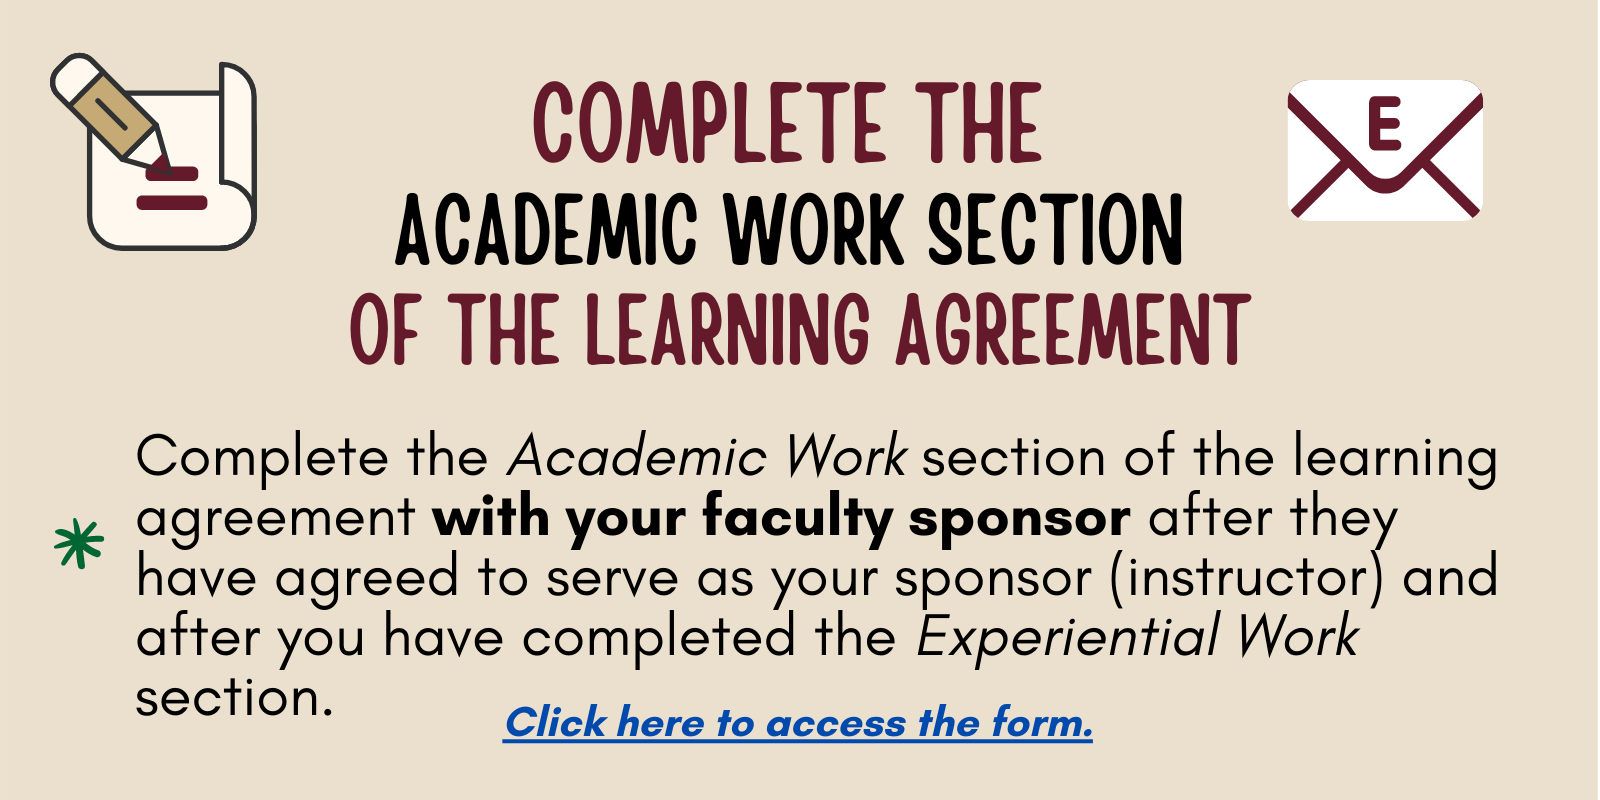 Complete the Academic Work Section of the Learning Agreement. Click here to access the form.